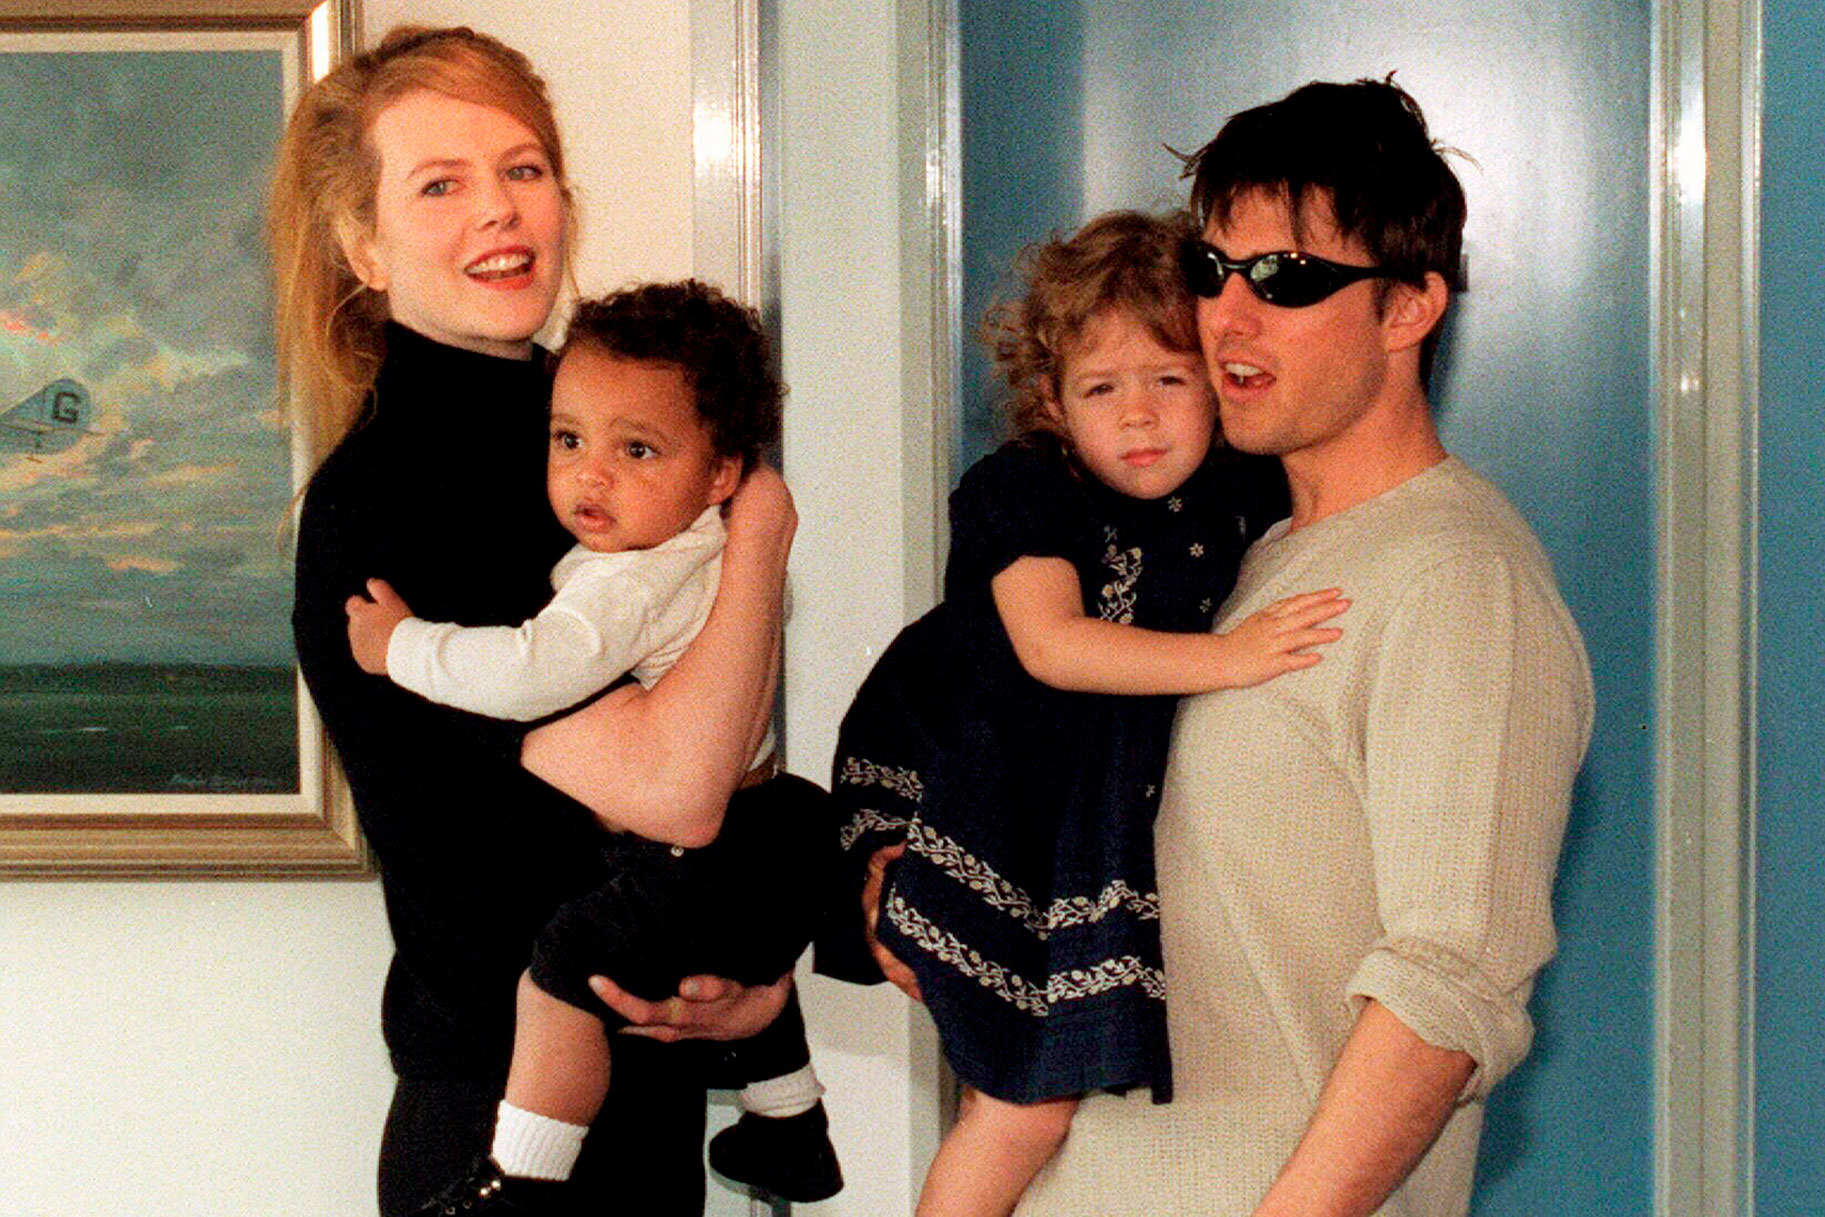 Where are Nicole Kidman's kids with Tom Cruise?